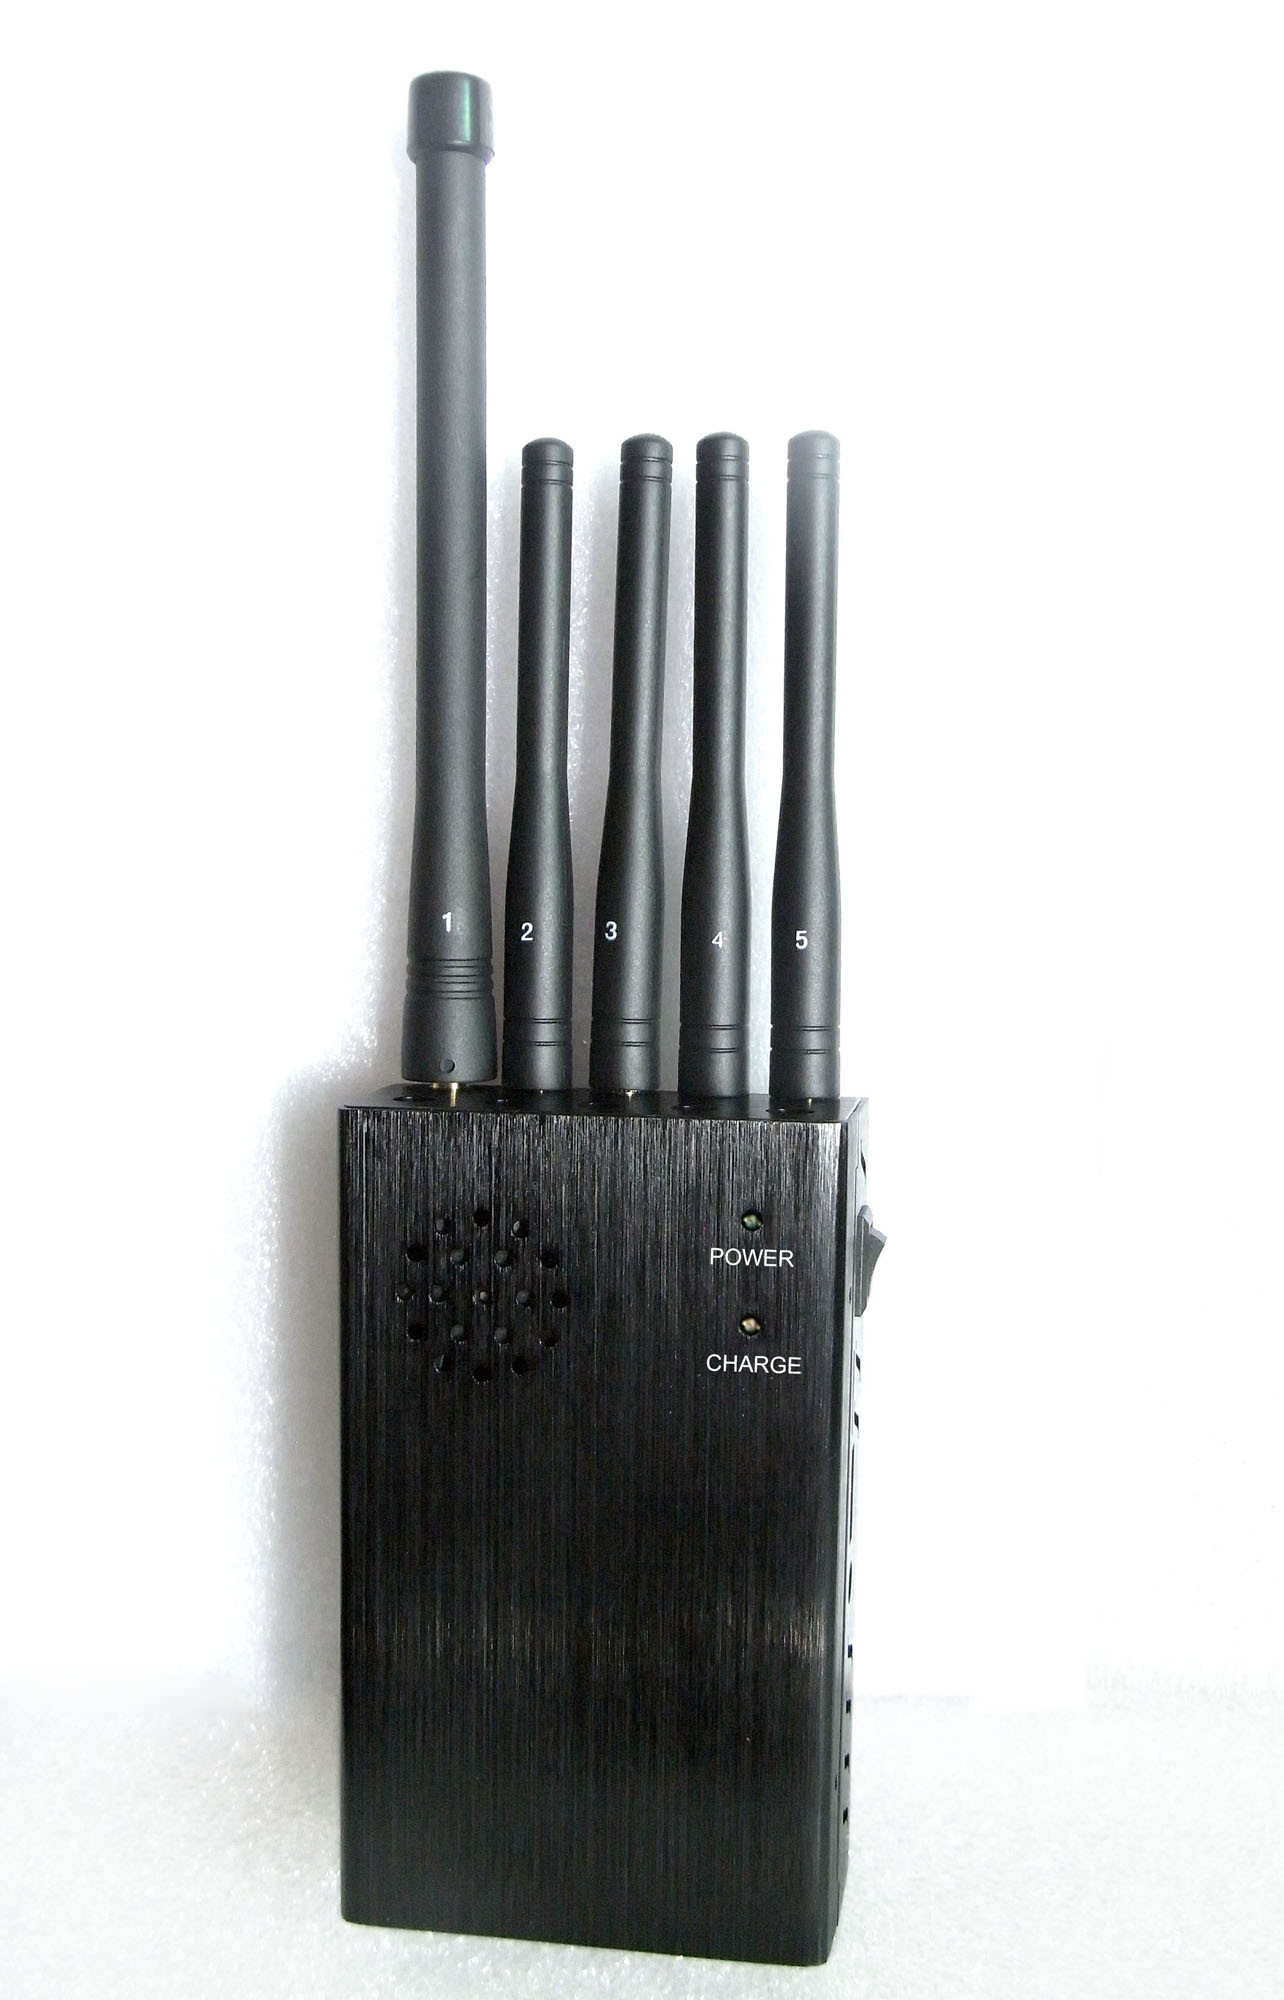 phone jammer fcc website